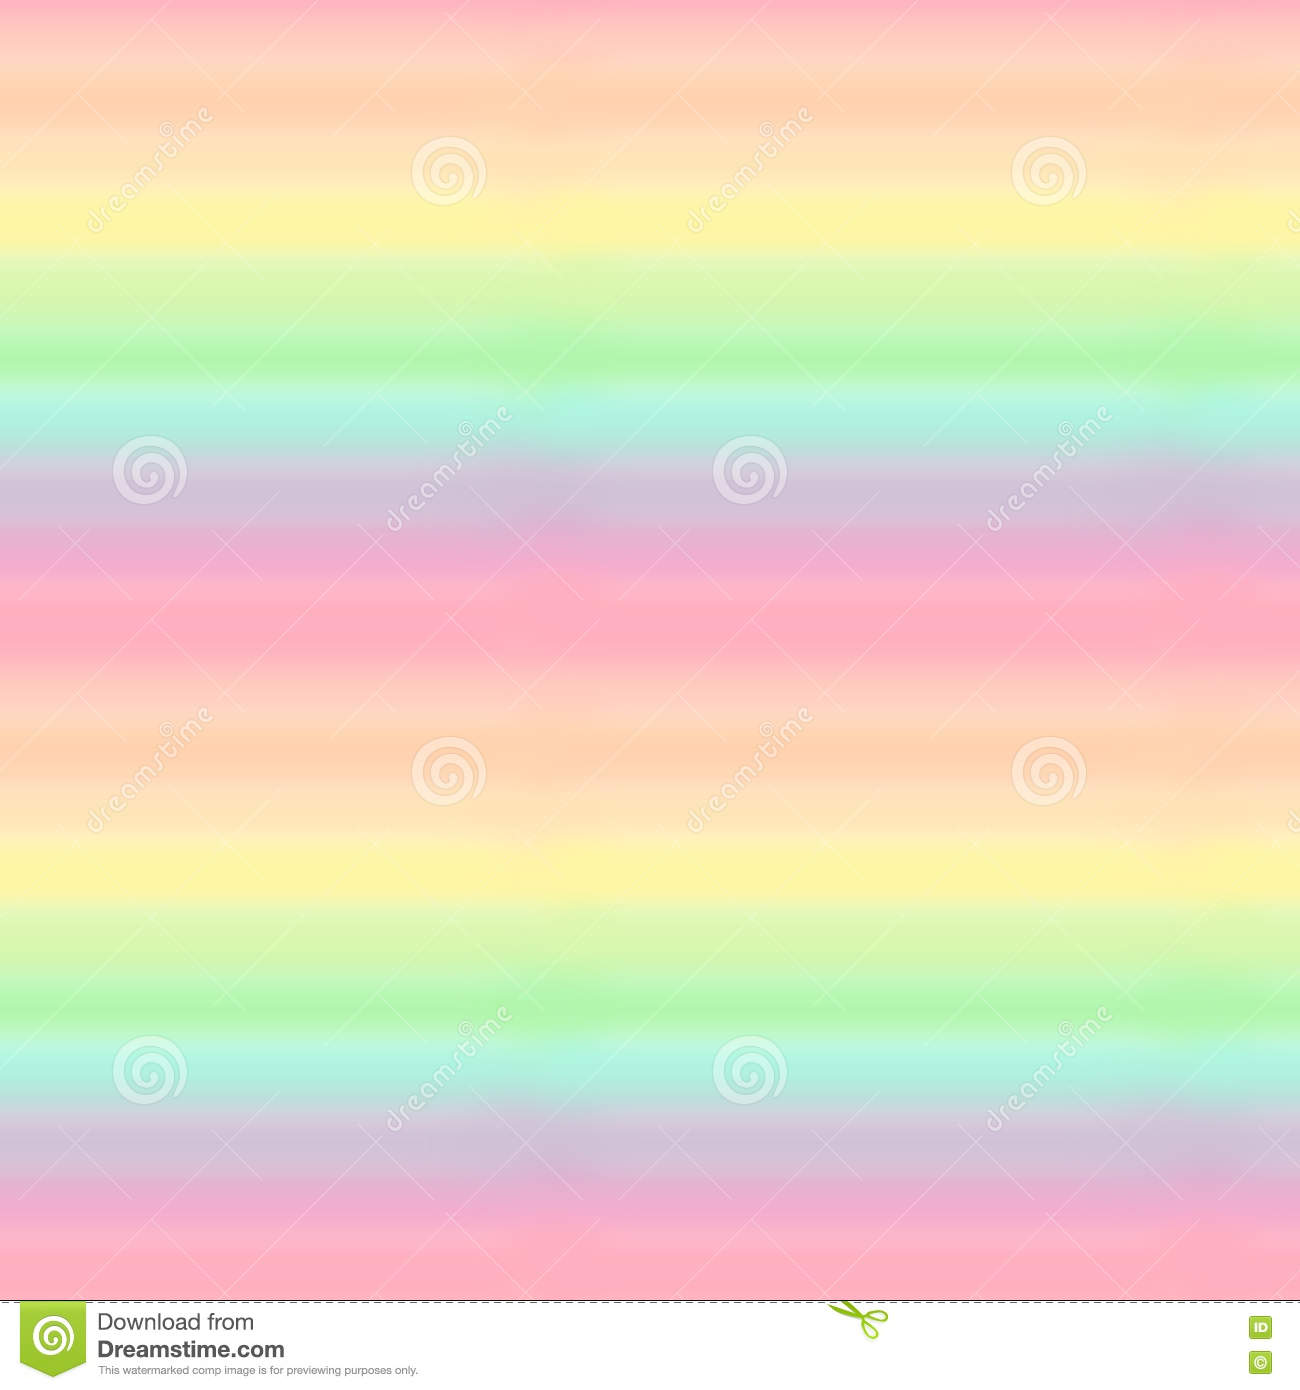 Cute Colorful Pastel Rainbow Seamless Pattern Background Illustration Stock Illustration Illustration Of Colorful Template 72927619